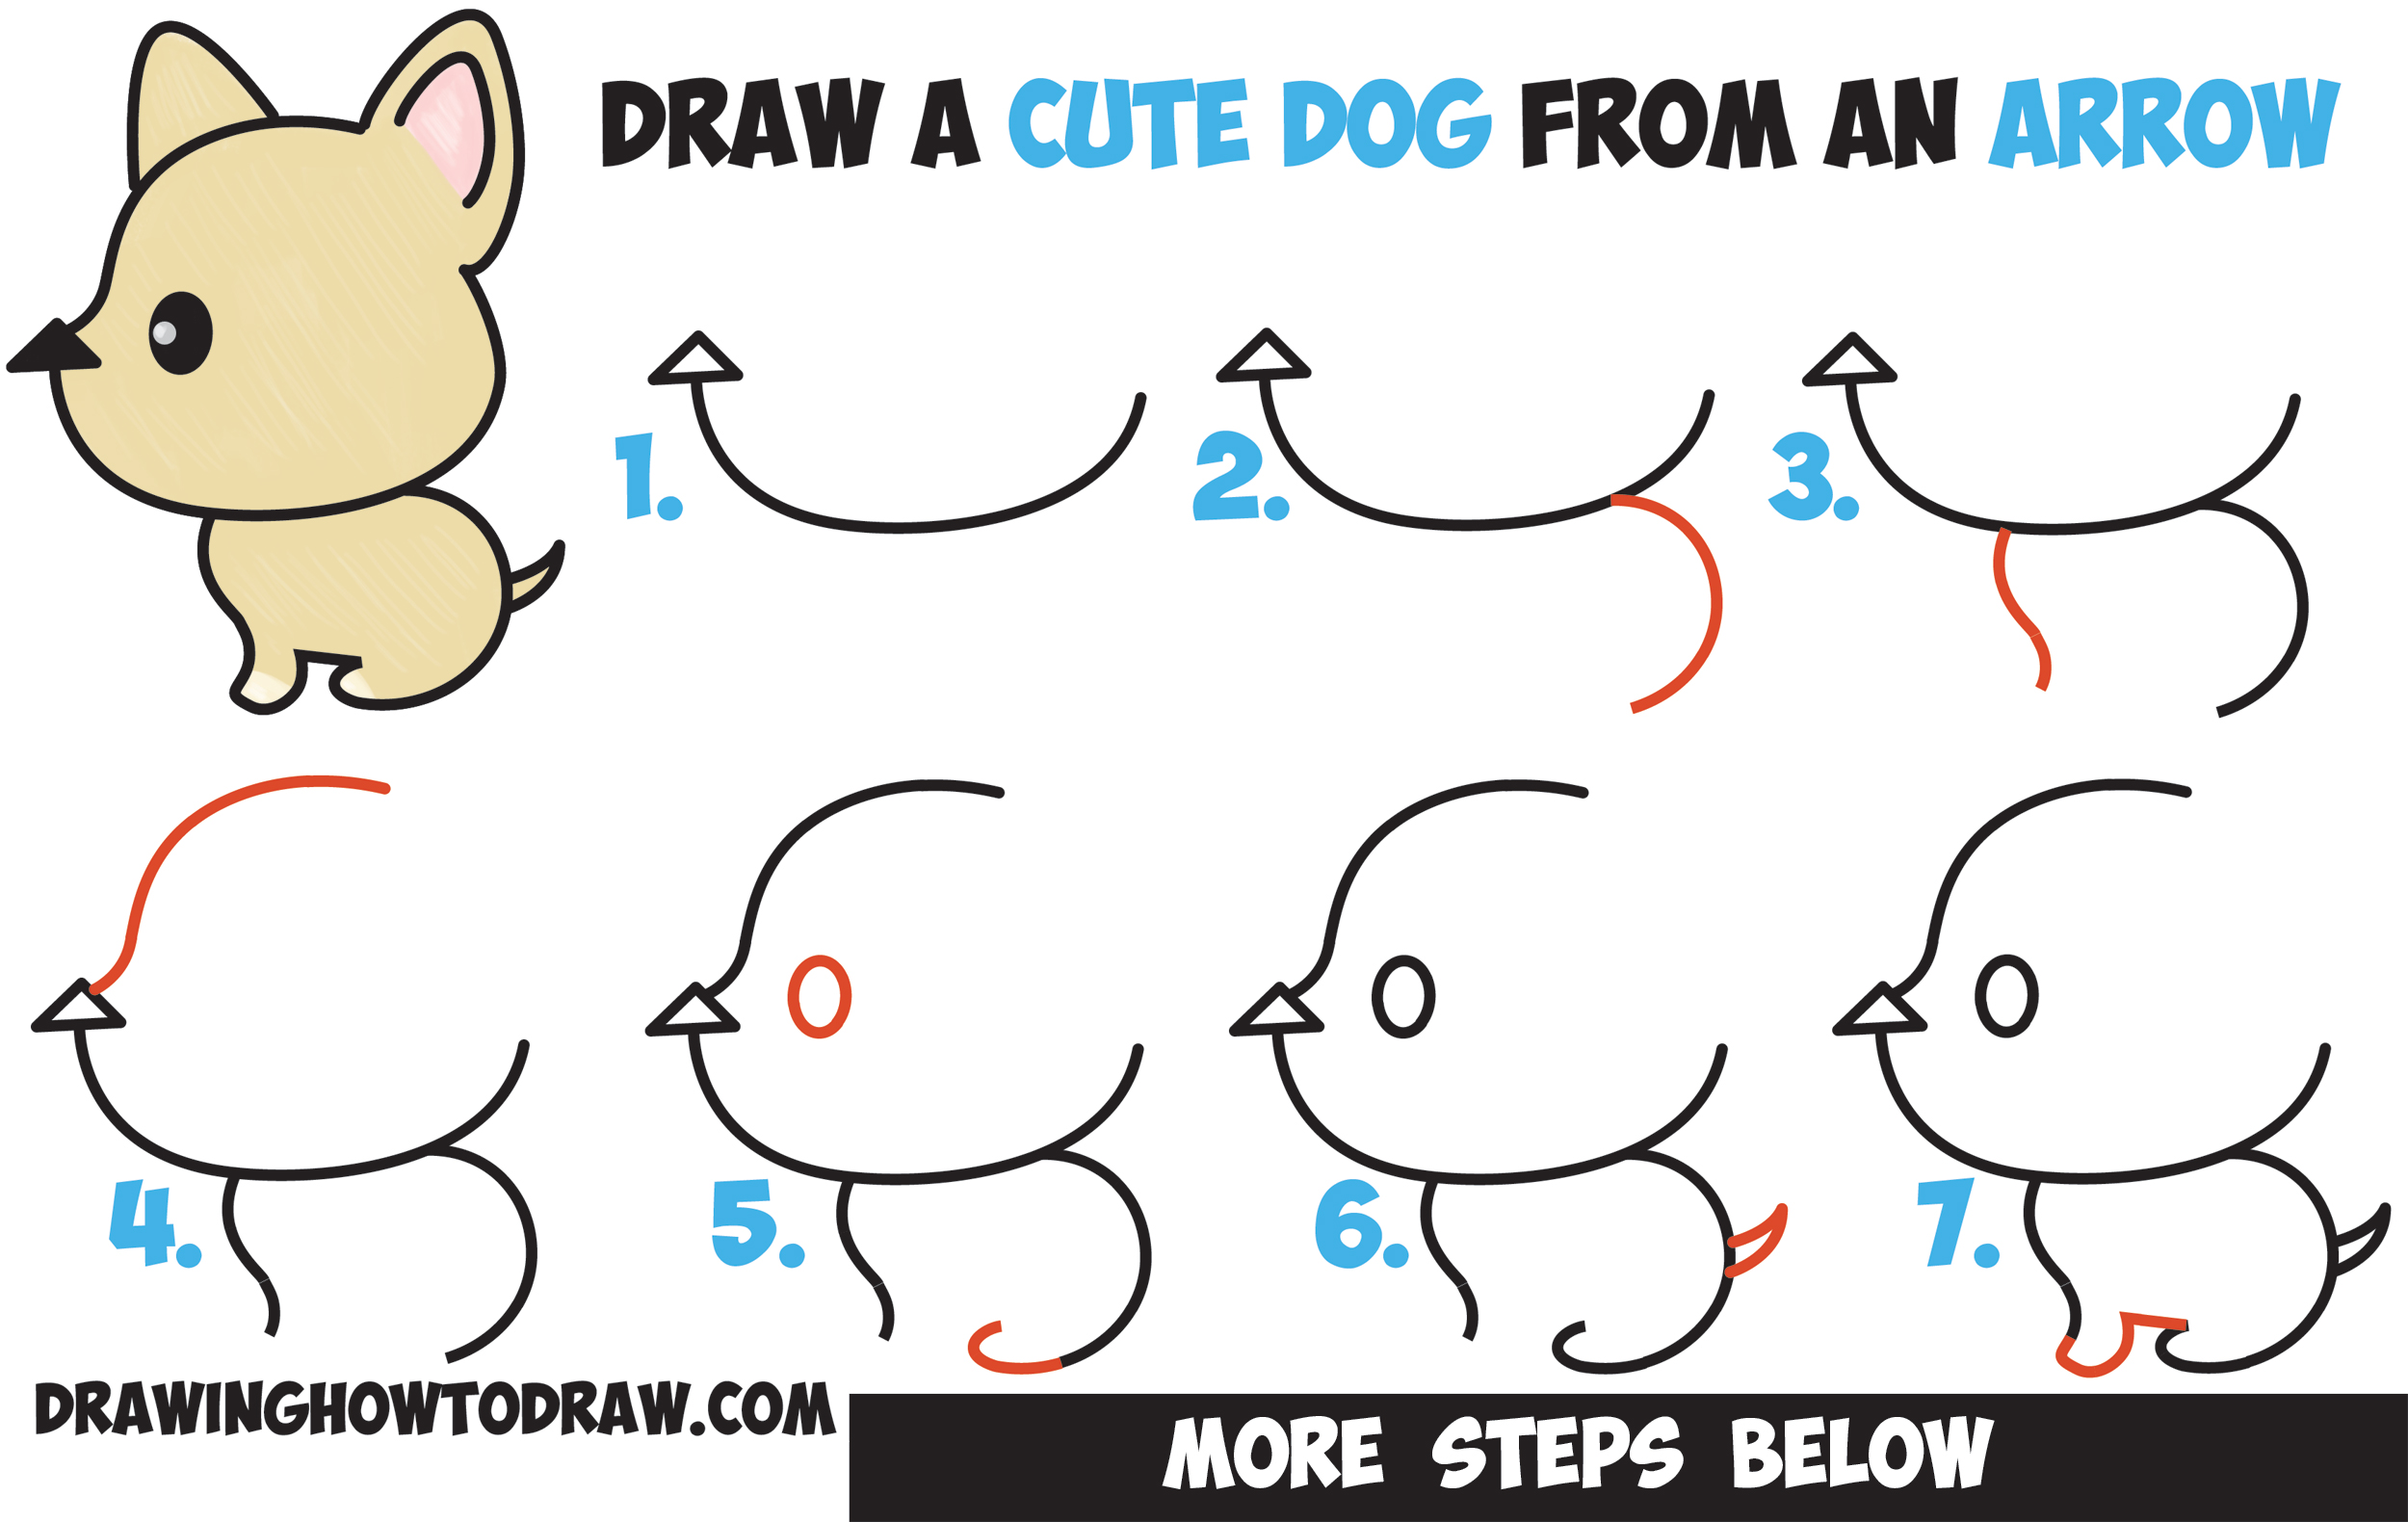 how to draw a cute cartoon dog kawaii style from an arrow easy step